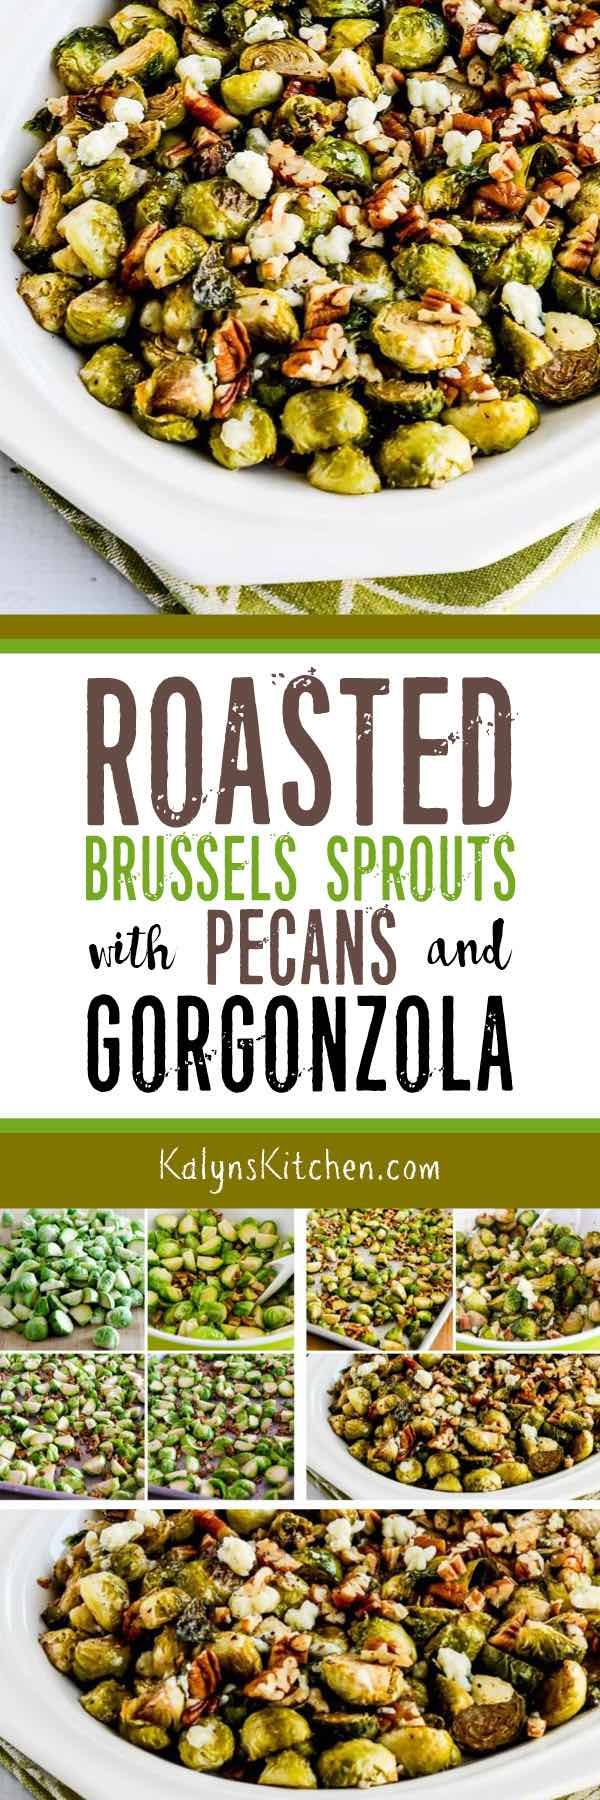 Roasted Brussels Sprouts with Pecans and Gorgonzola are a side dish that will make any brussels sprouts fan swoon! You can skip the Gorgonzola and just toss the roasted brussels sprouts and pecans with butter if you prefer. However you do it, you'll love this side dish that's low-carb, Keto, gluten-free, and could be South Beach Diet friendly for a special treat. [found on KalynsKitchen.com] #BrusselsSprouts #RoastedBrusselsSprouts #RoastedBrusselsSproutsPecans #LowCarbSideDish